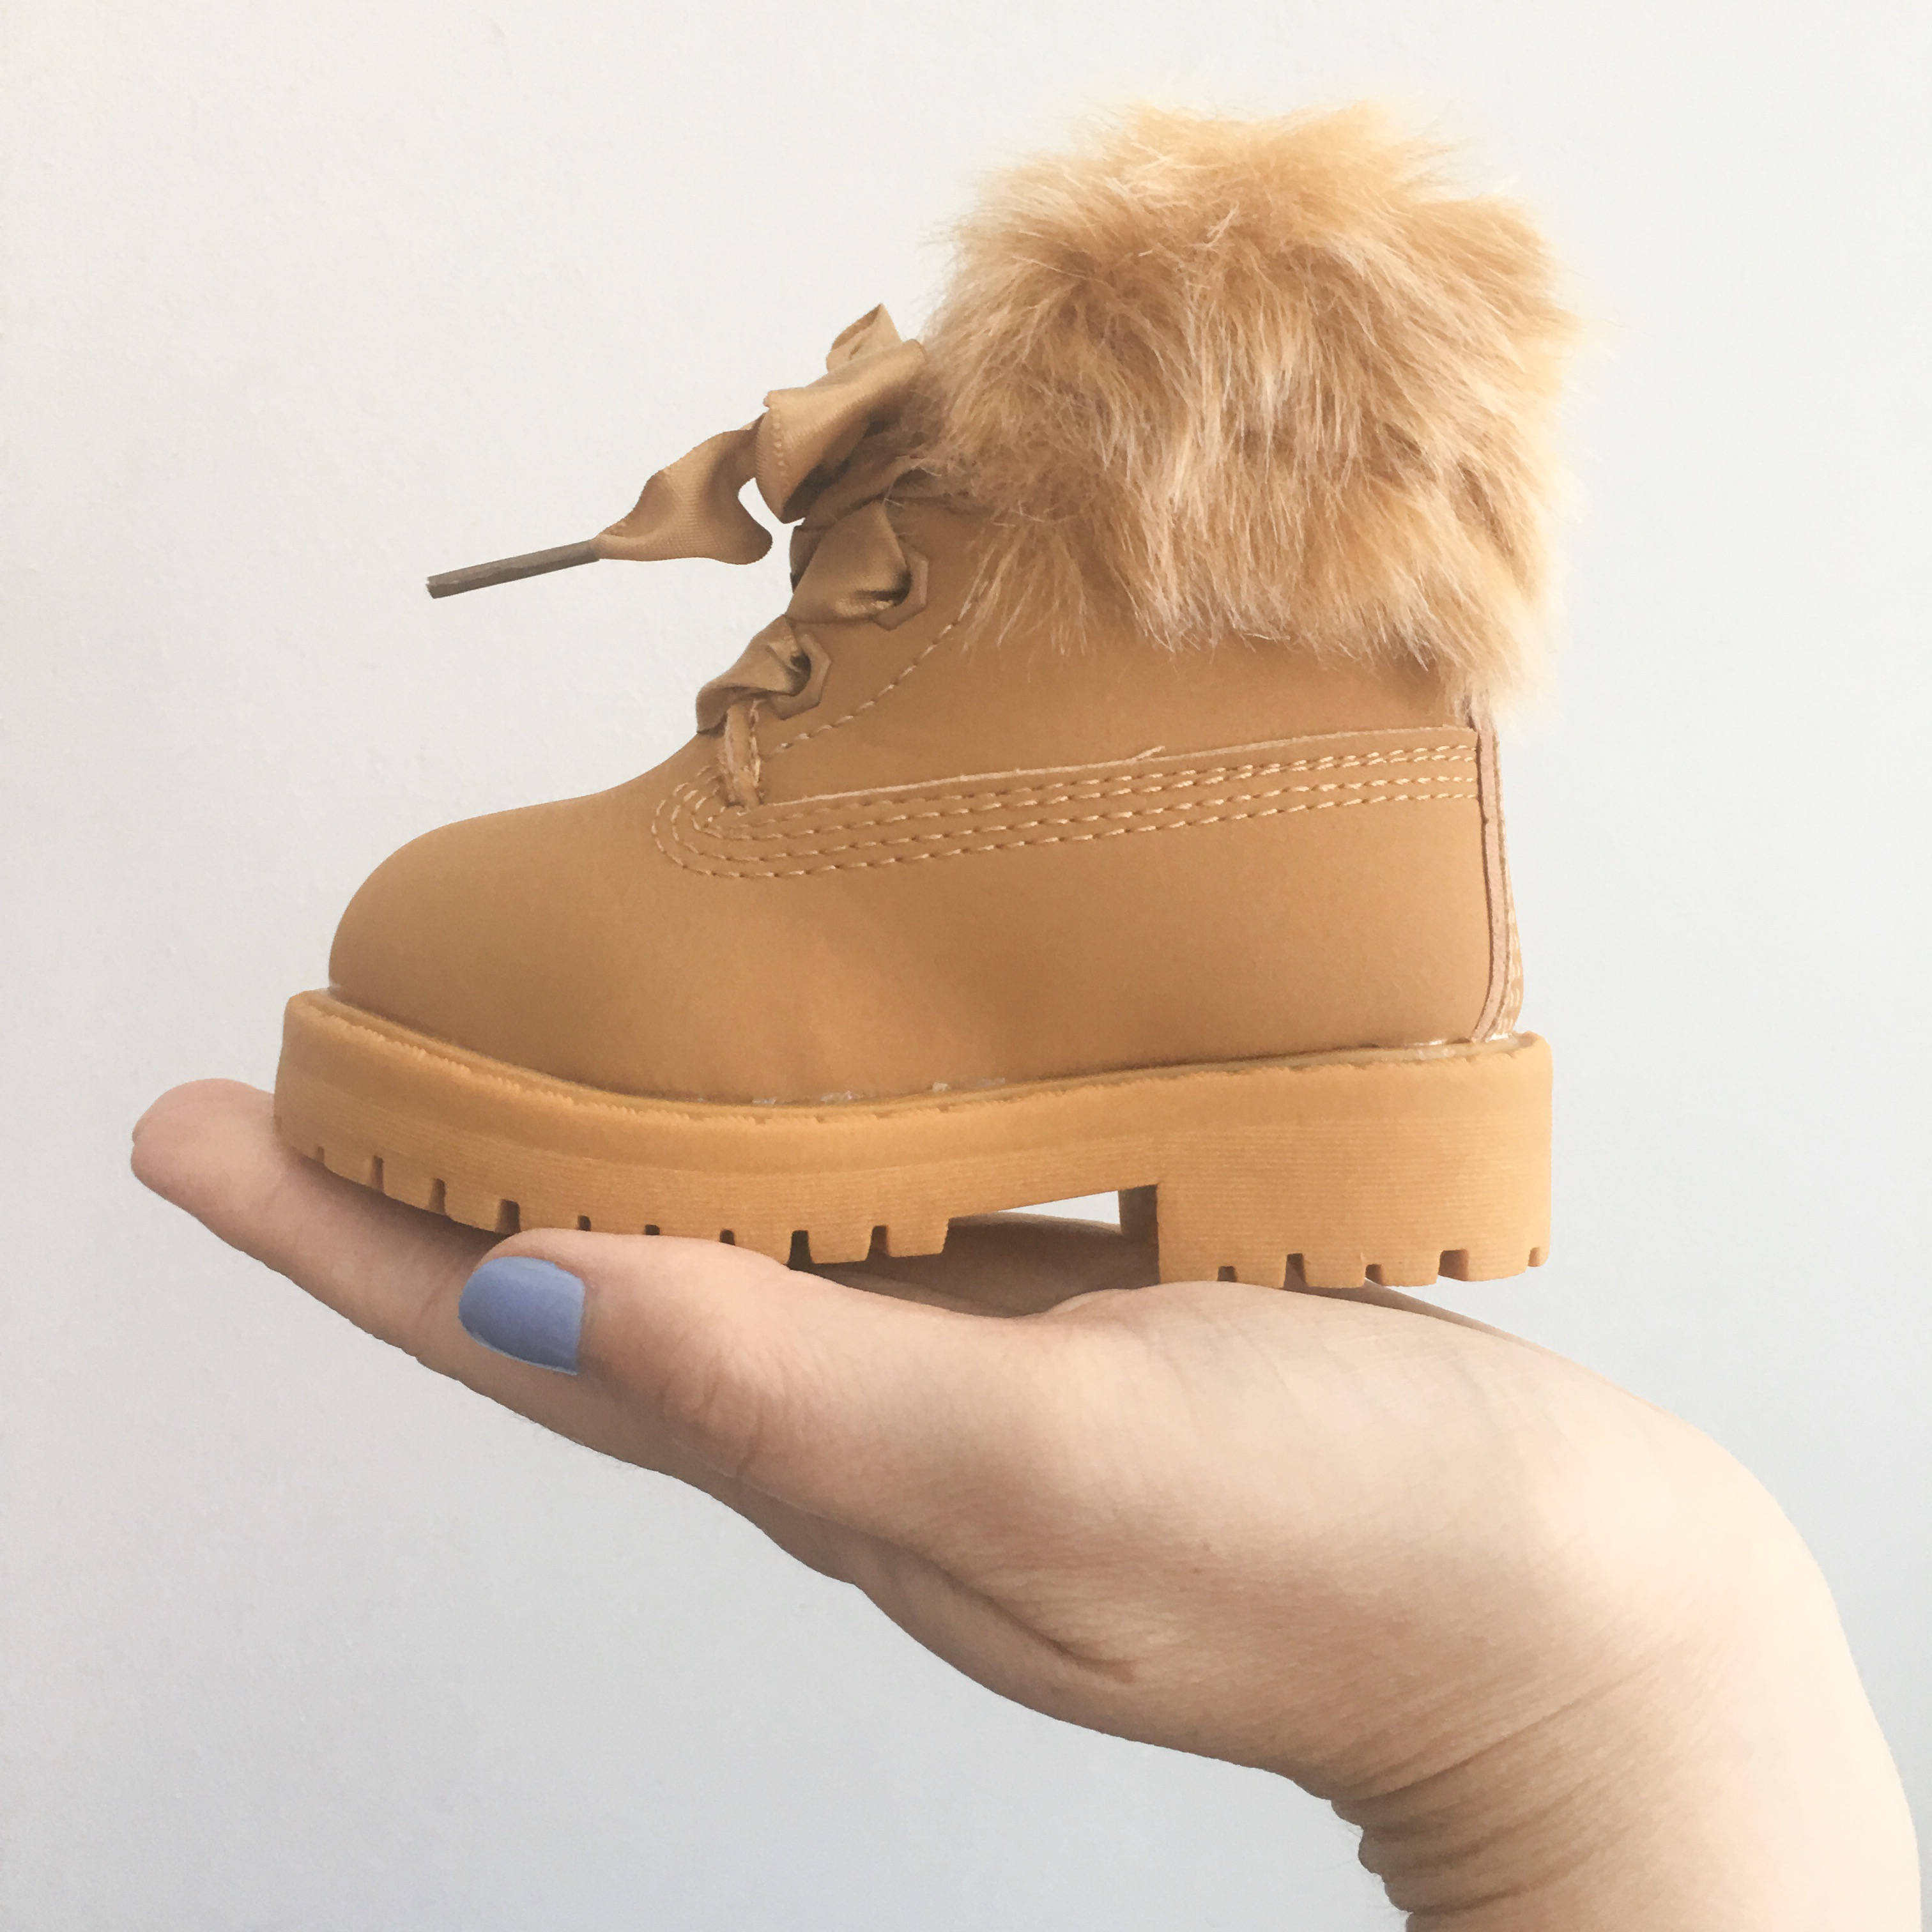 hot sales ba28c 72fc5 Itty Bitty Camel Winter fur boot – Baby Boutique Clothing